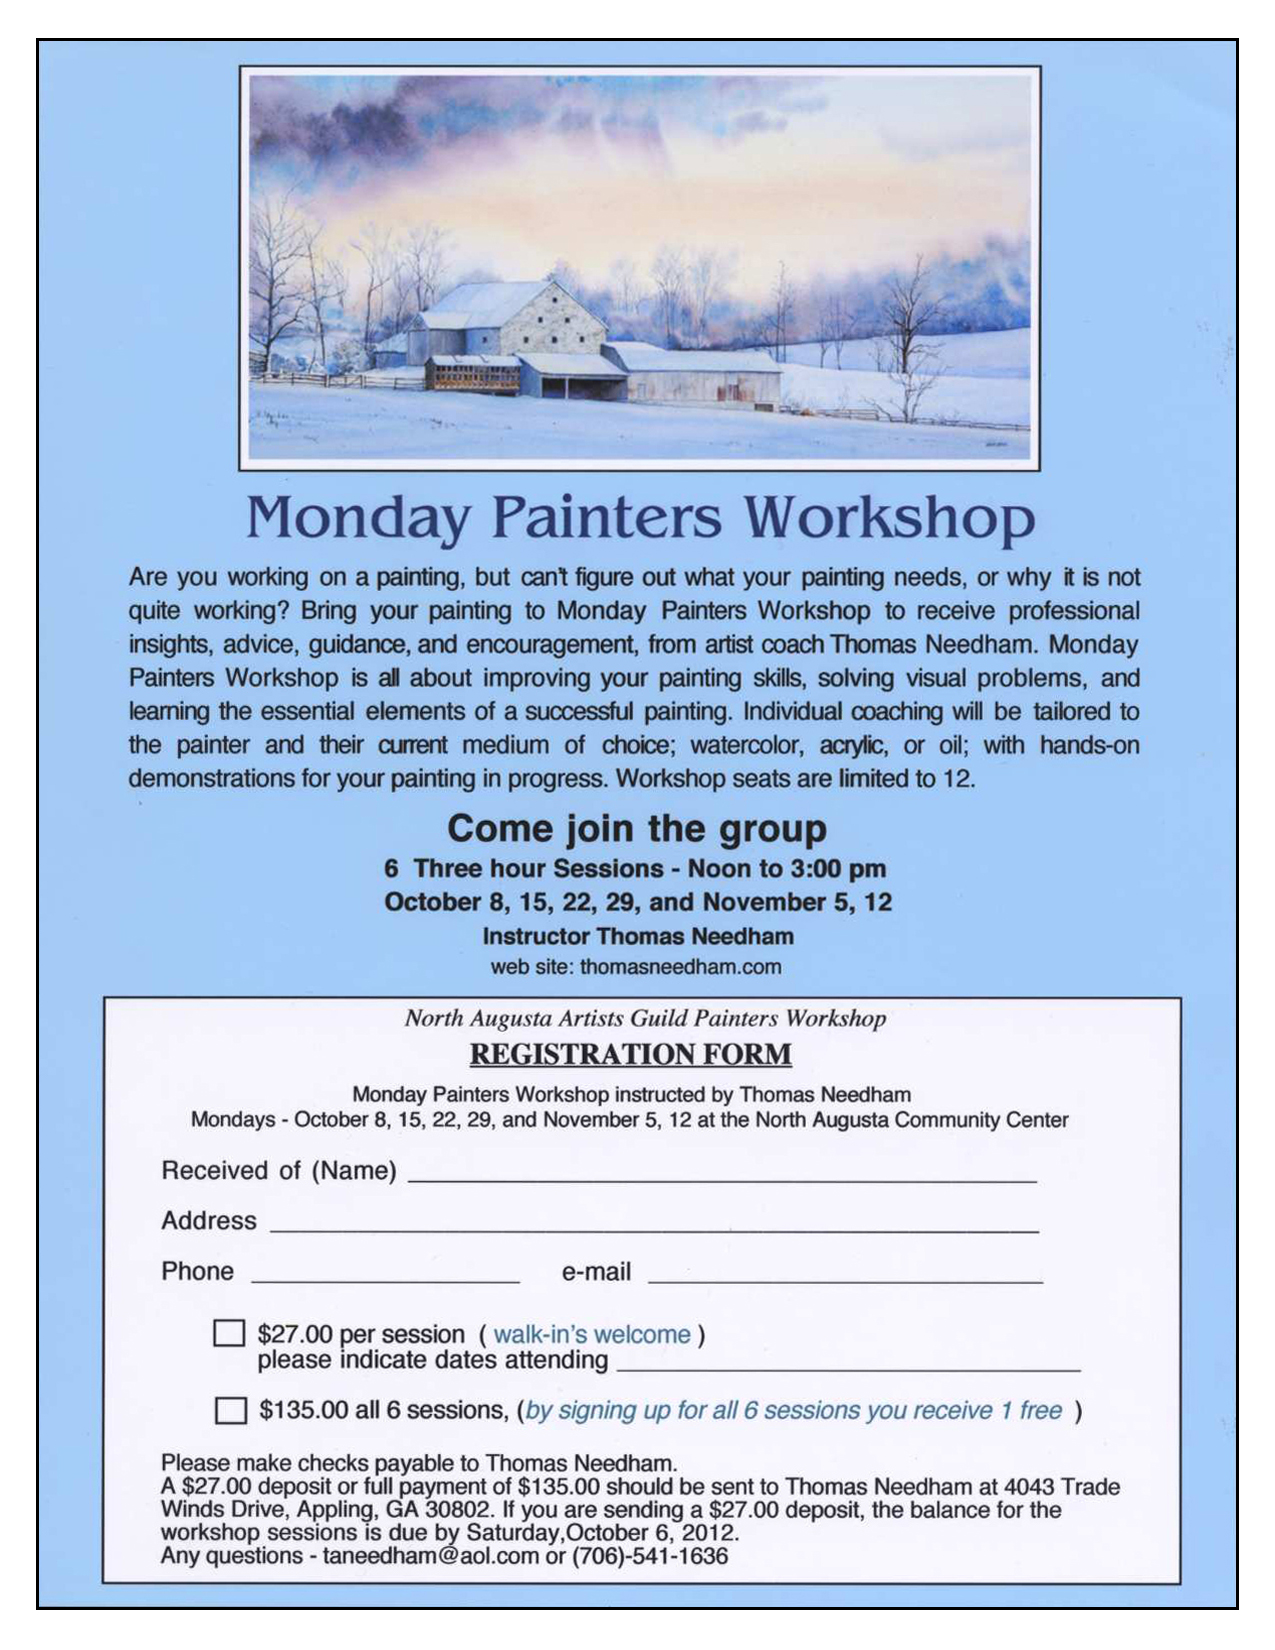 Monday Painters Workshop With Artist Coach Thomas Needham